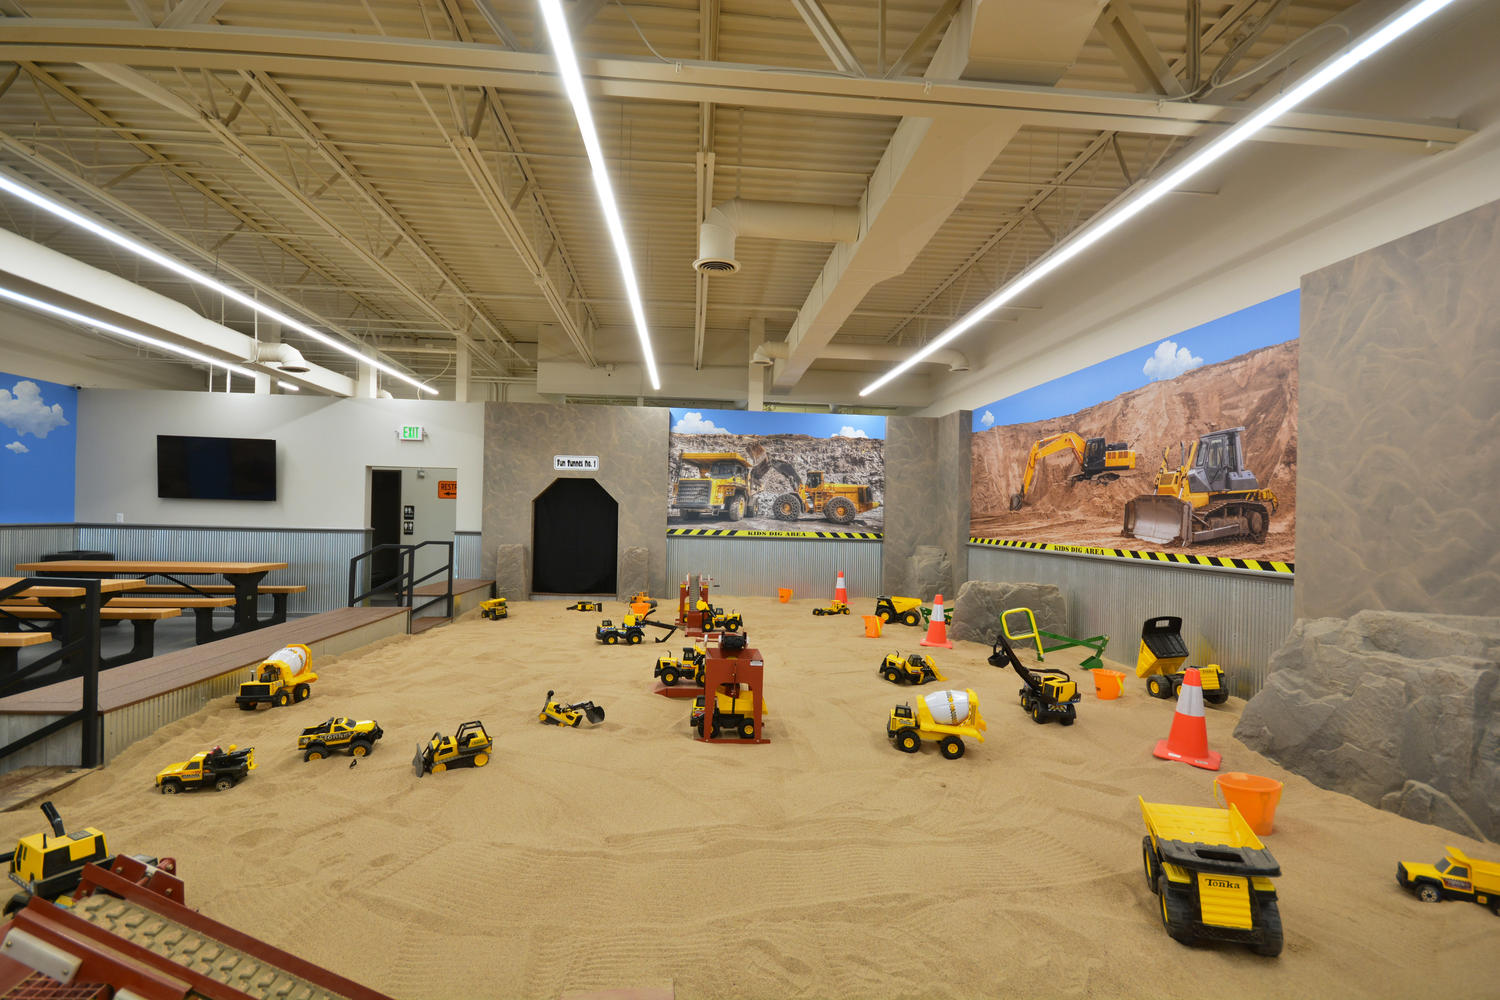 Big W Sand Pit Indoor Play Area With Oversized Sandbox Opens In Littleton To